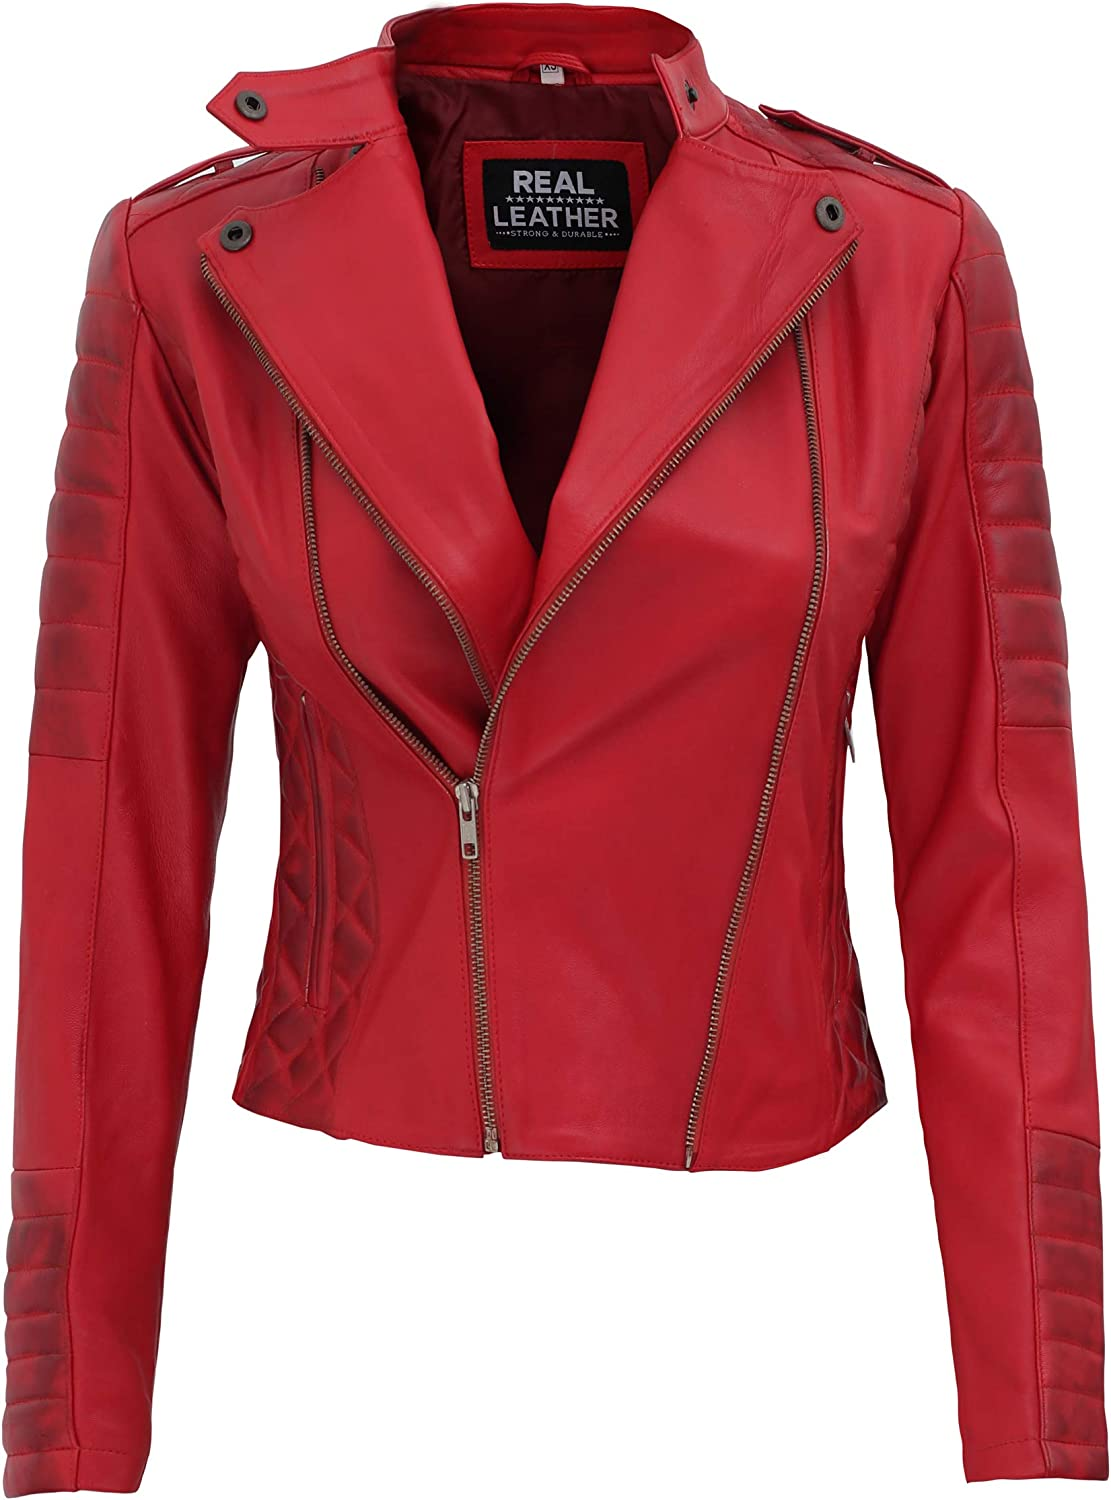 Real Lambskin Leather Jackets for Women Women Leather Jacket